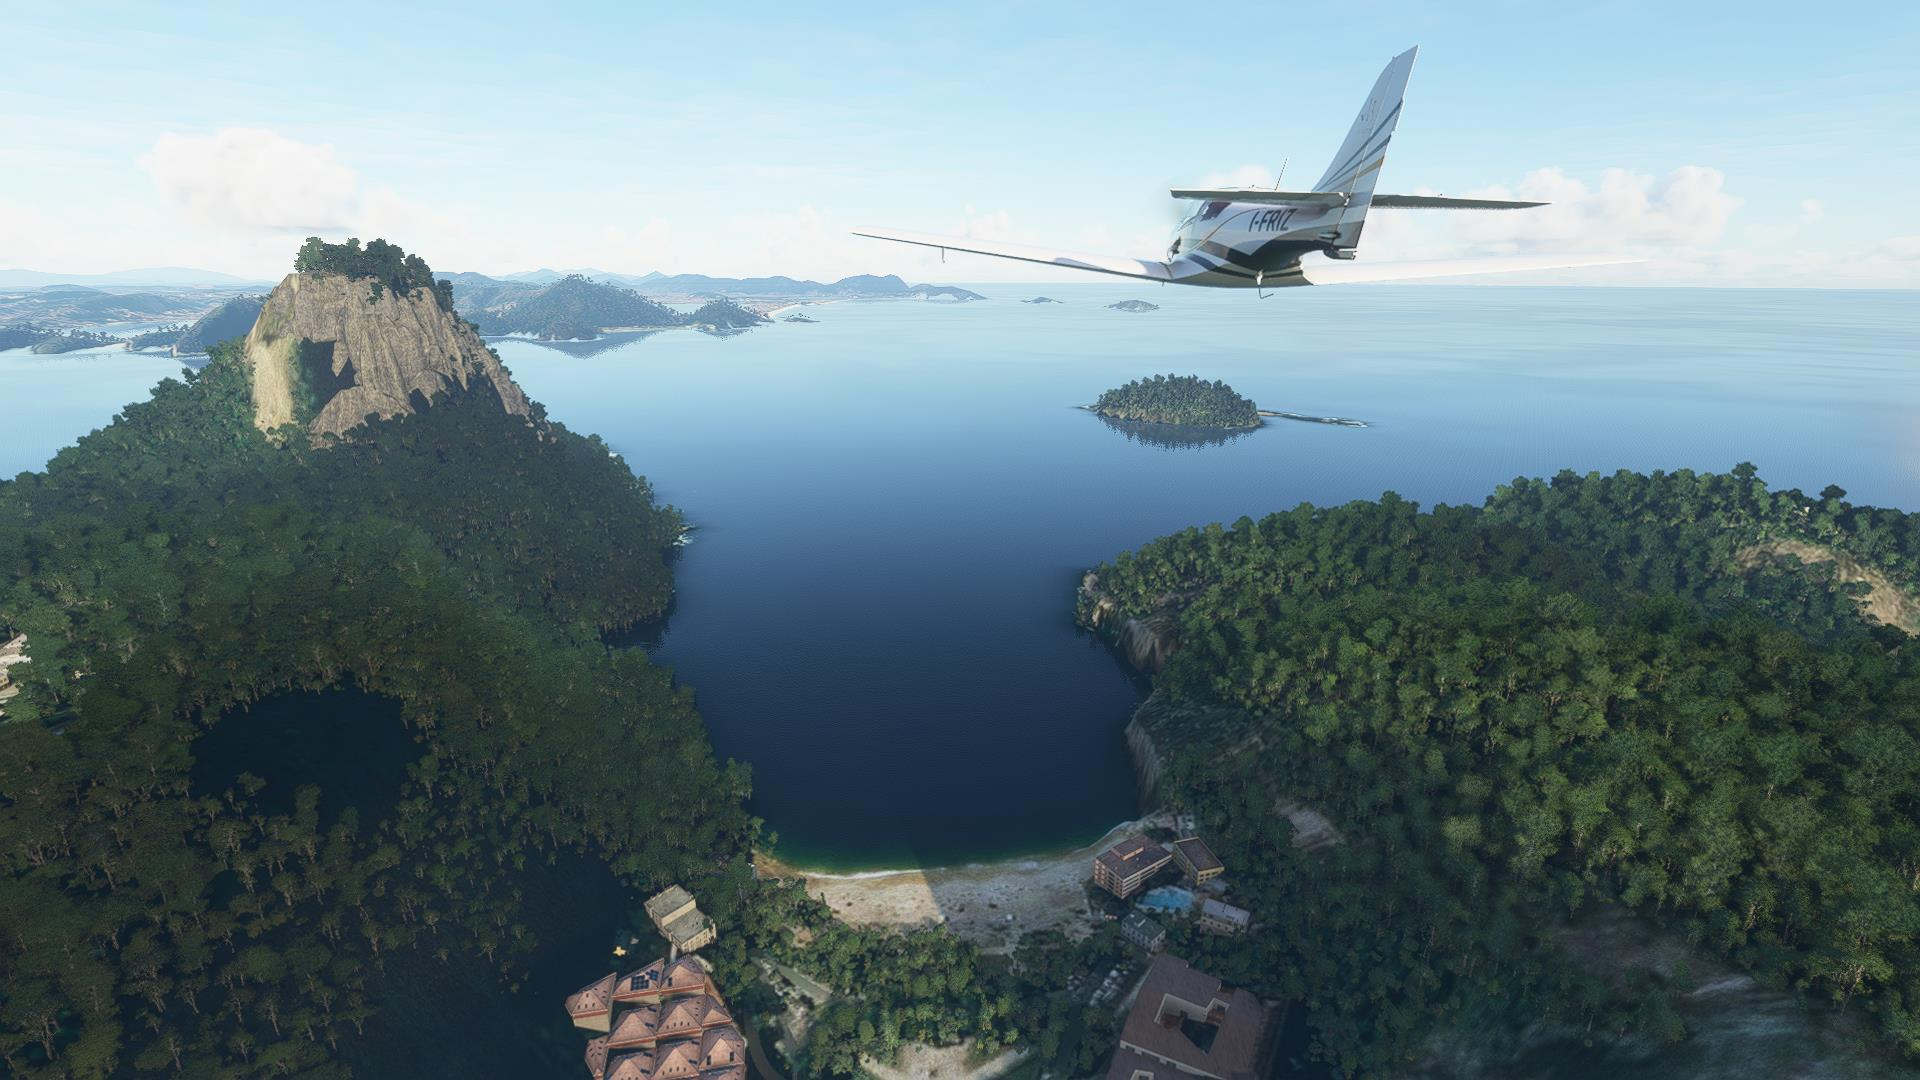 https://vivendobyte.blob.core.windows.net/57793/Microsoft Flight Simulator 13_01_2021 20_02_01.jpg